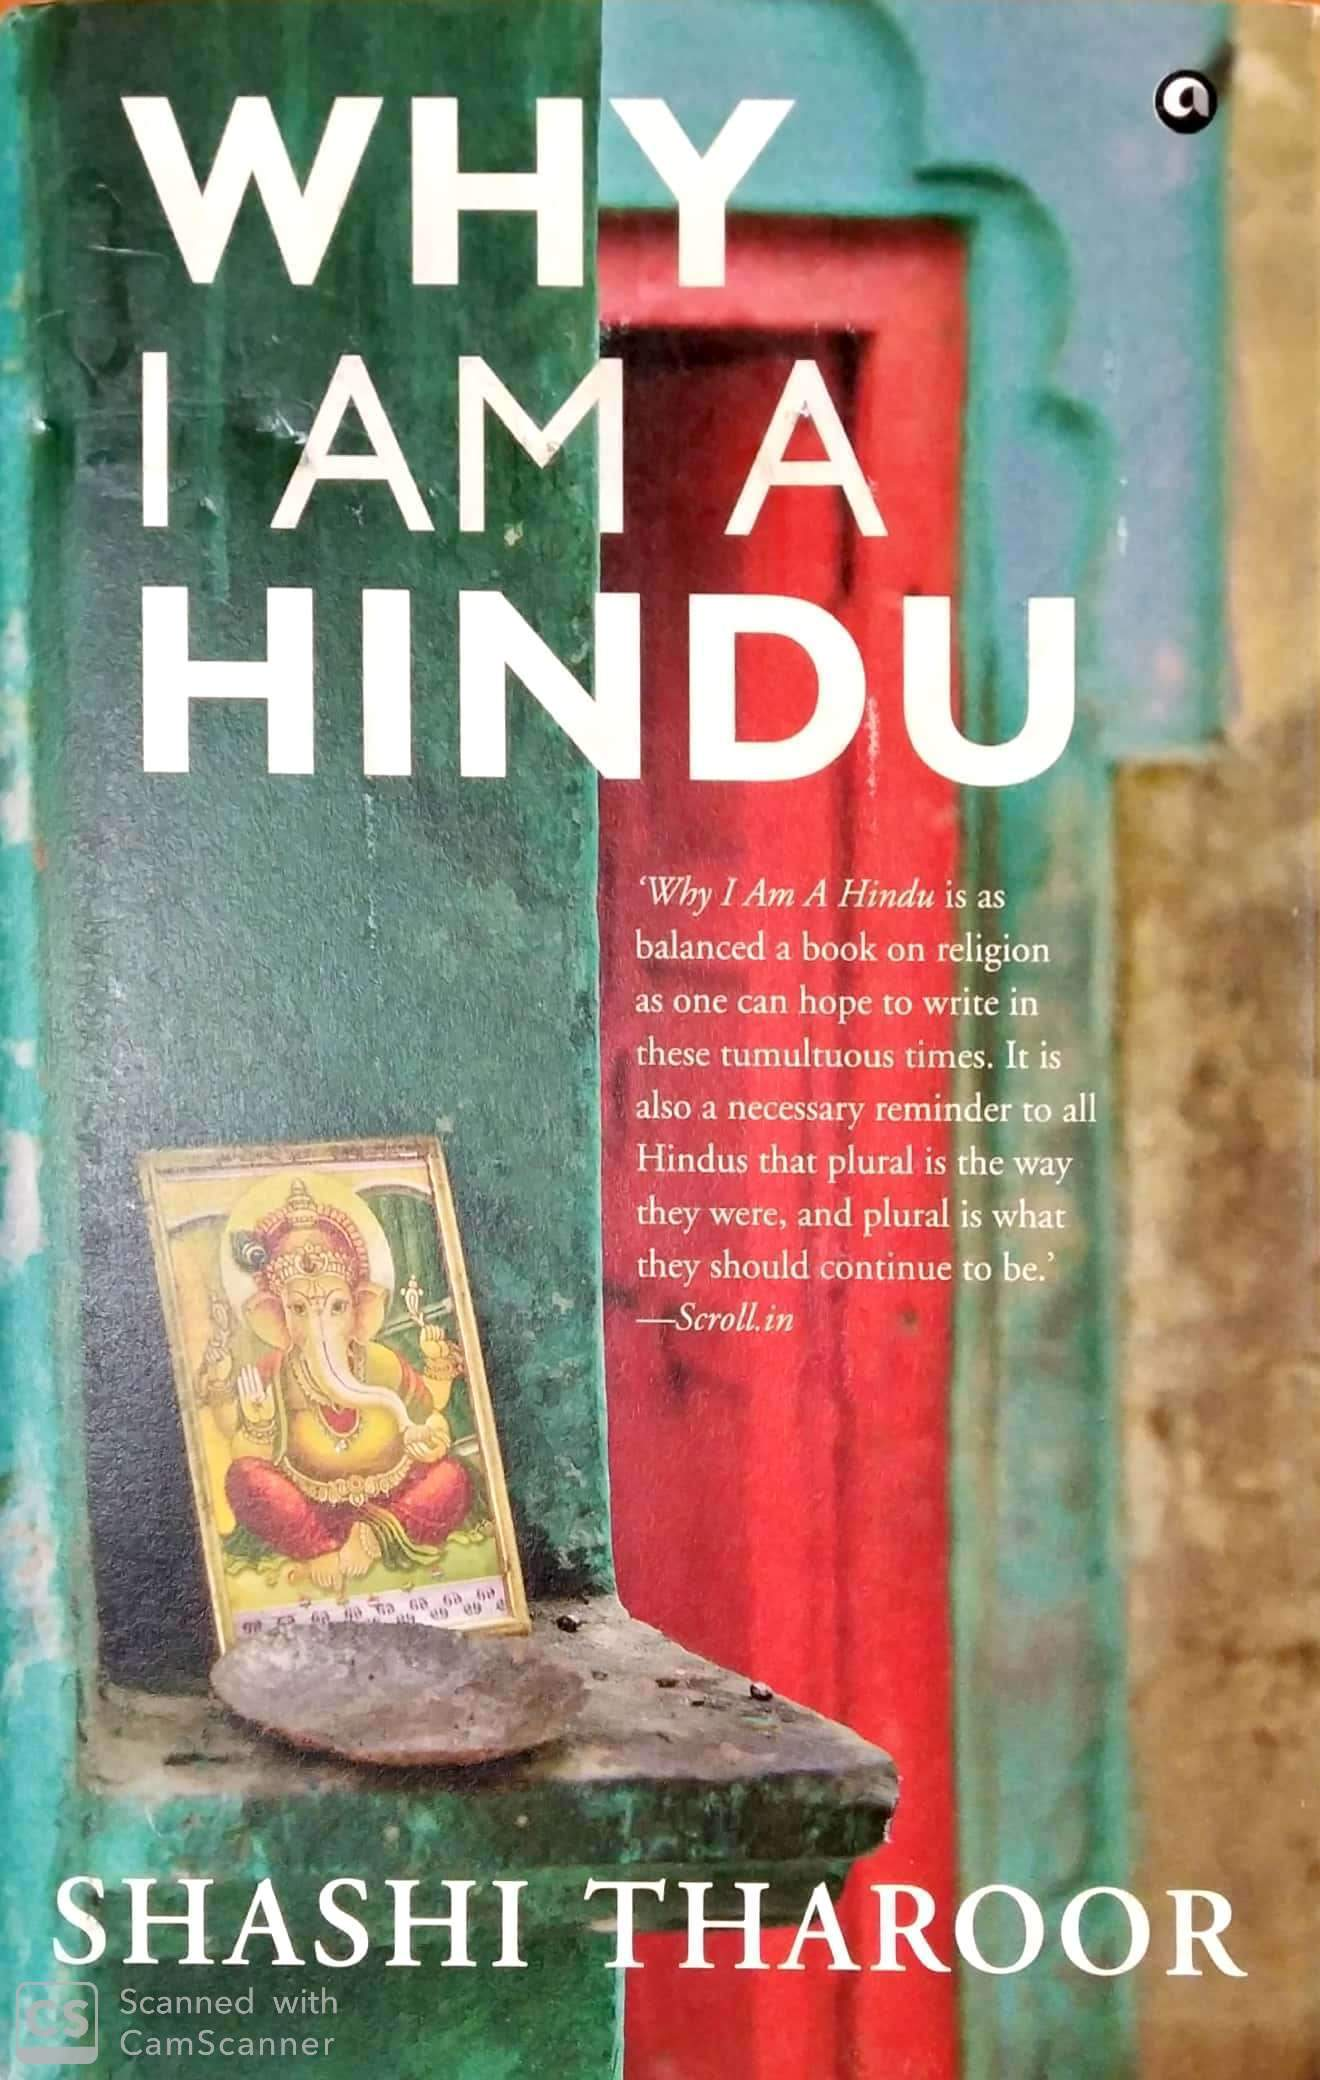 Why I am a Hindu (Hardcover Edition)